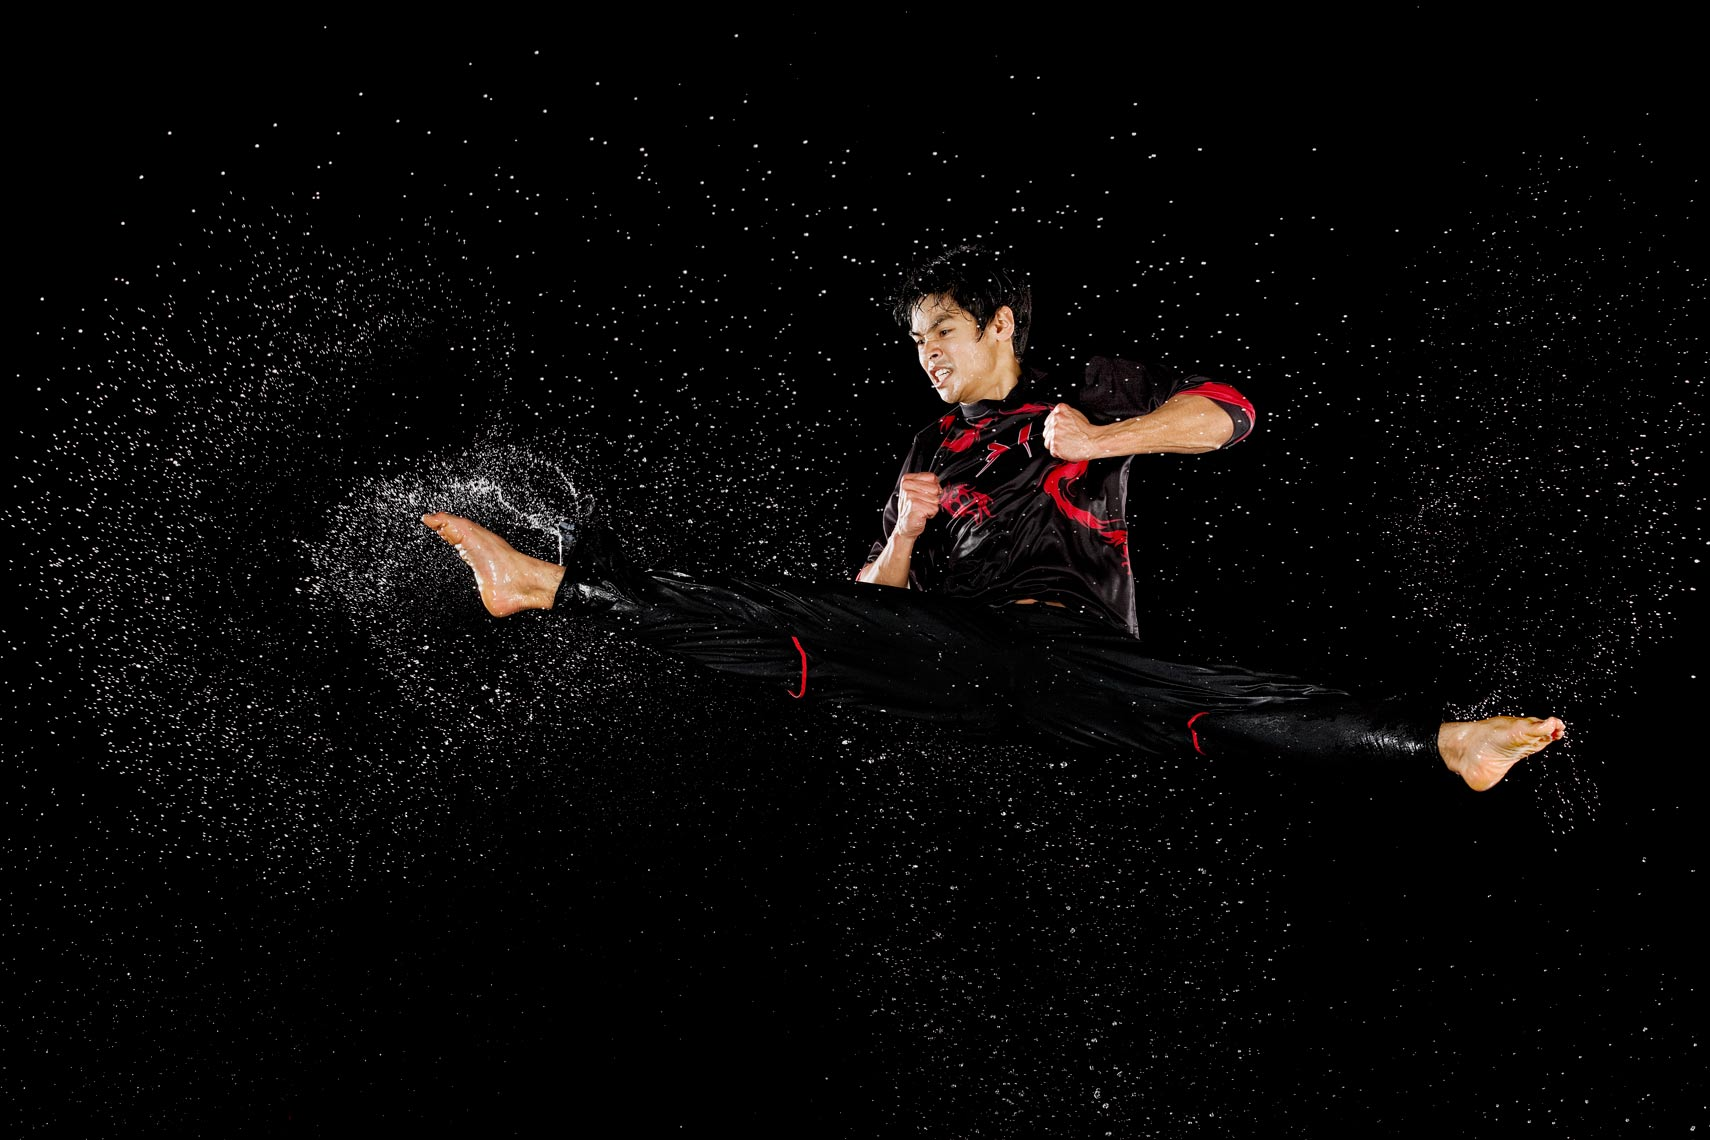 Martial-Art-Splash-7-0926-Edited.jpg